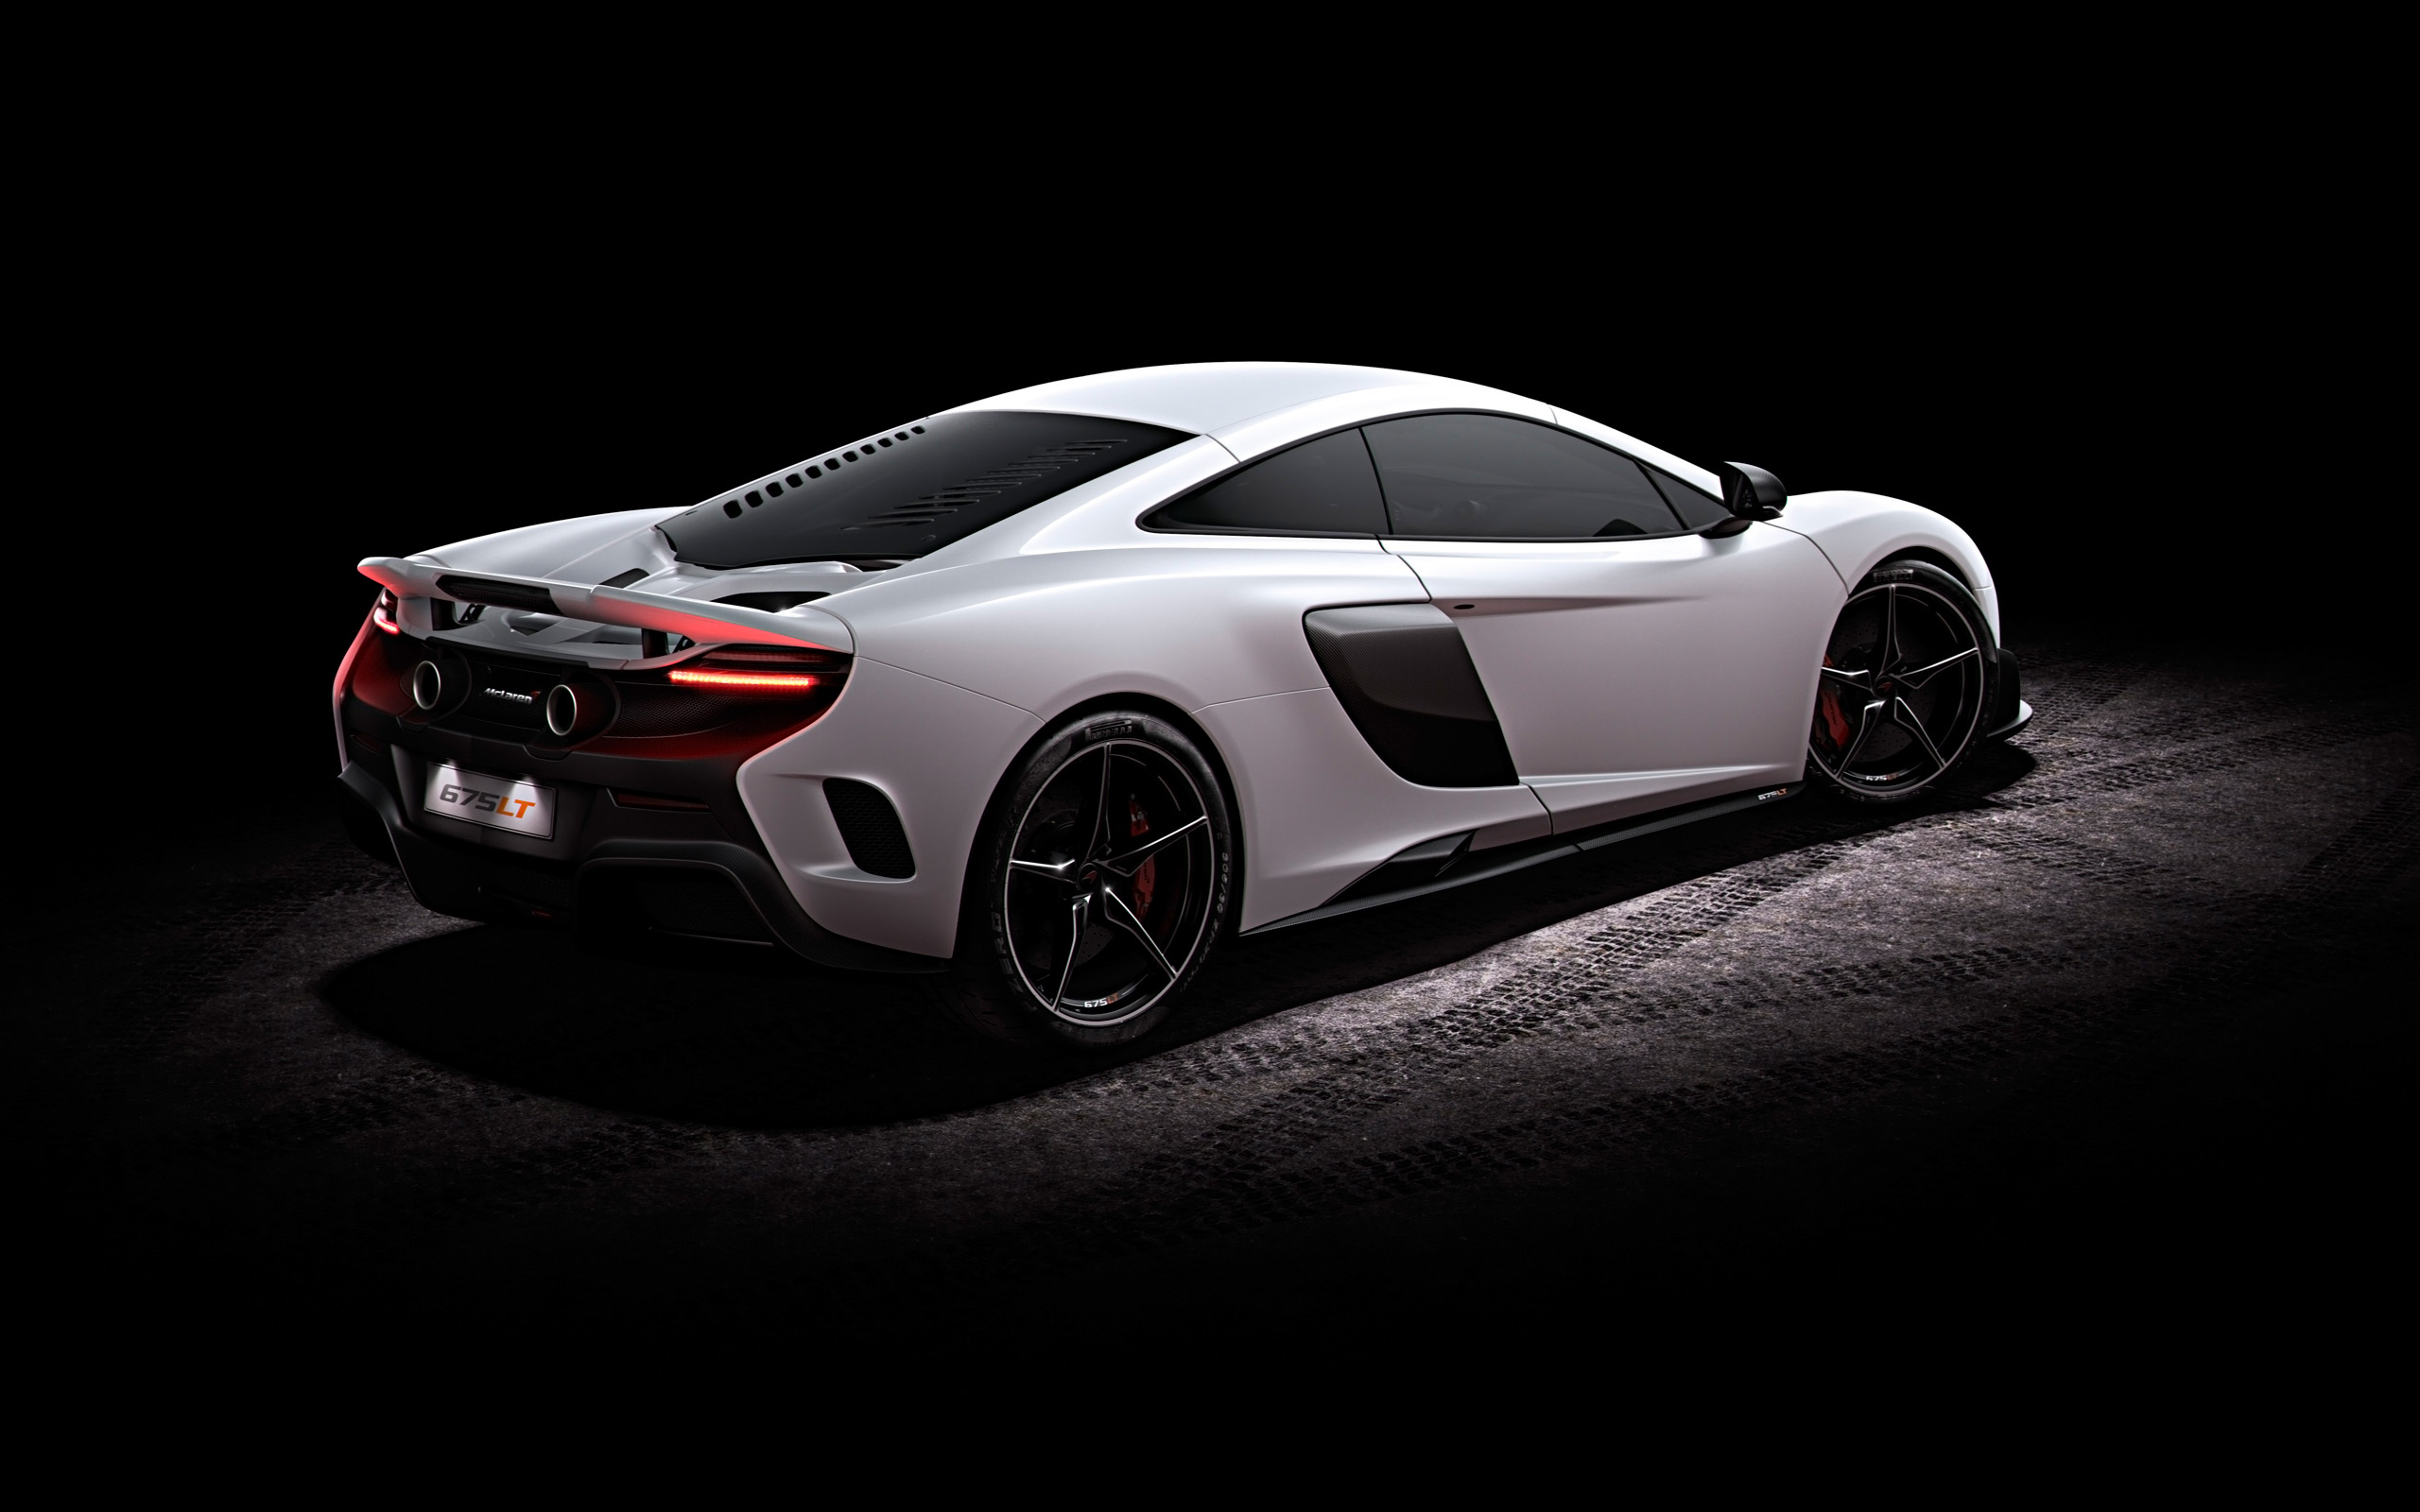 Download Hd Wallpapers 1080p Widescreen Cars Gallery